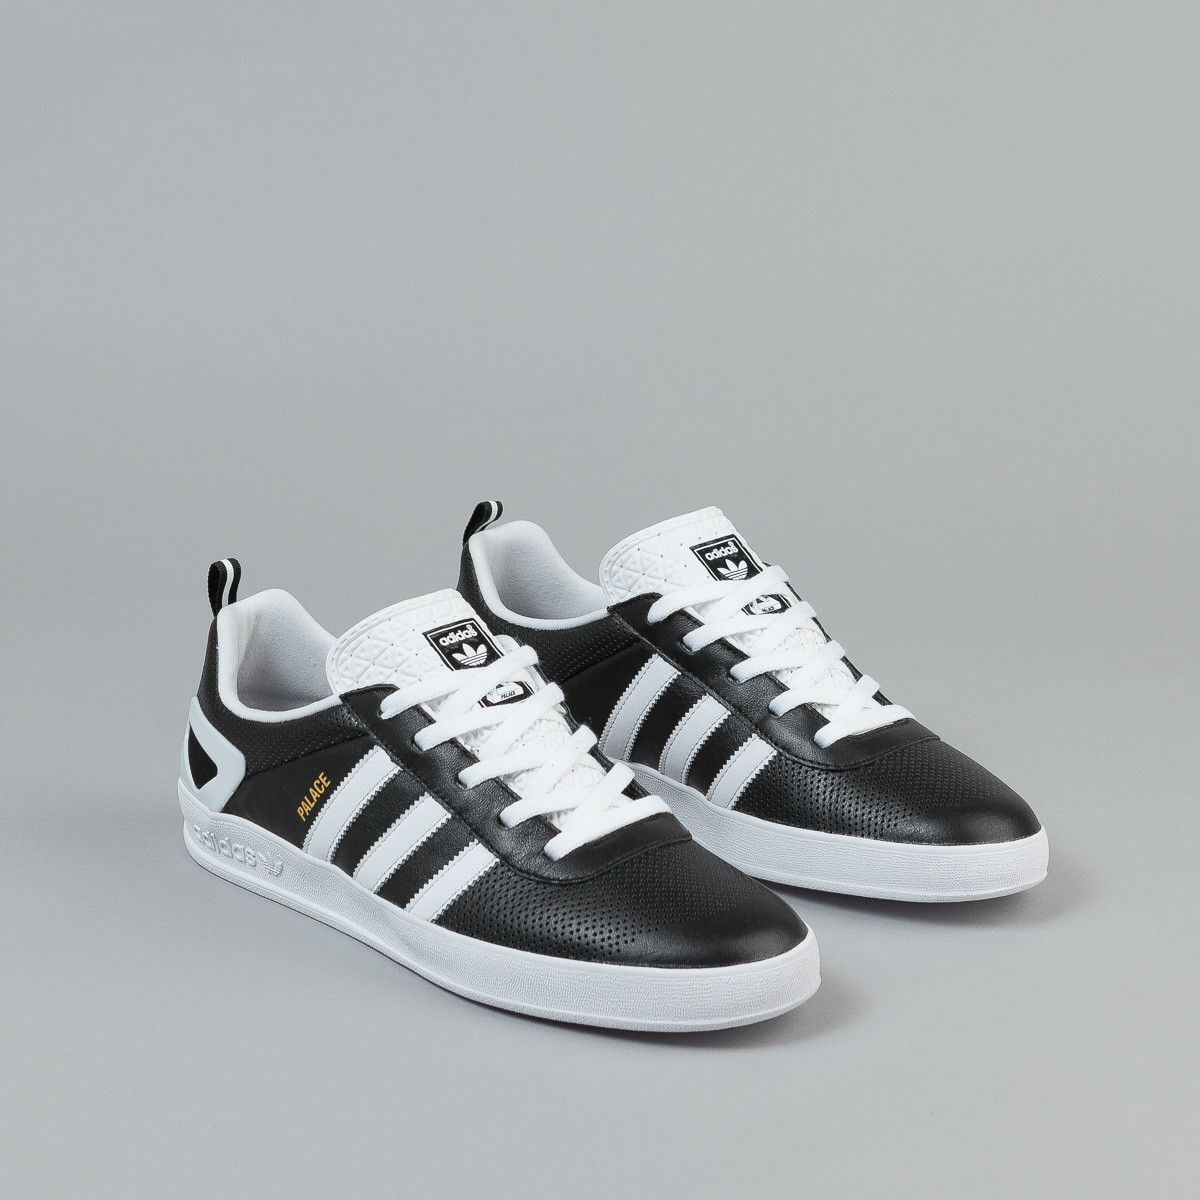 d79e263e6c9 Adidas X Palace Pro Shoes - Black   White   Gold